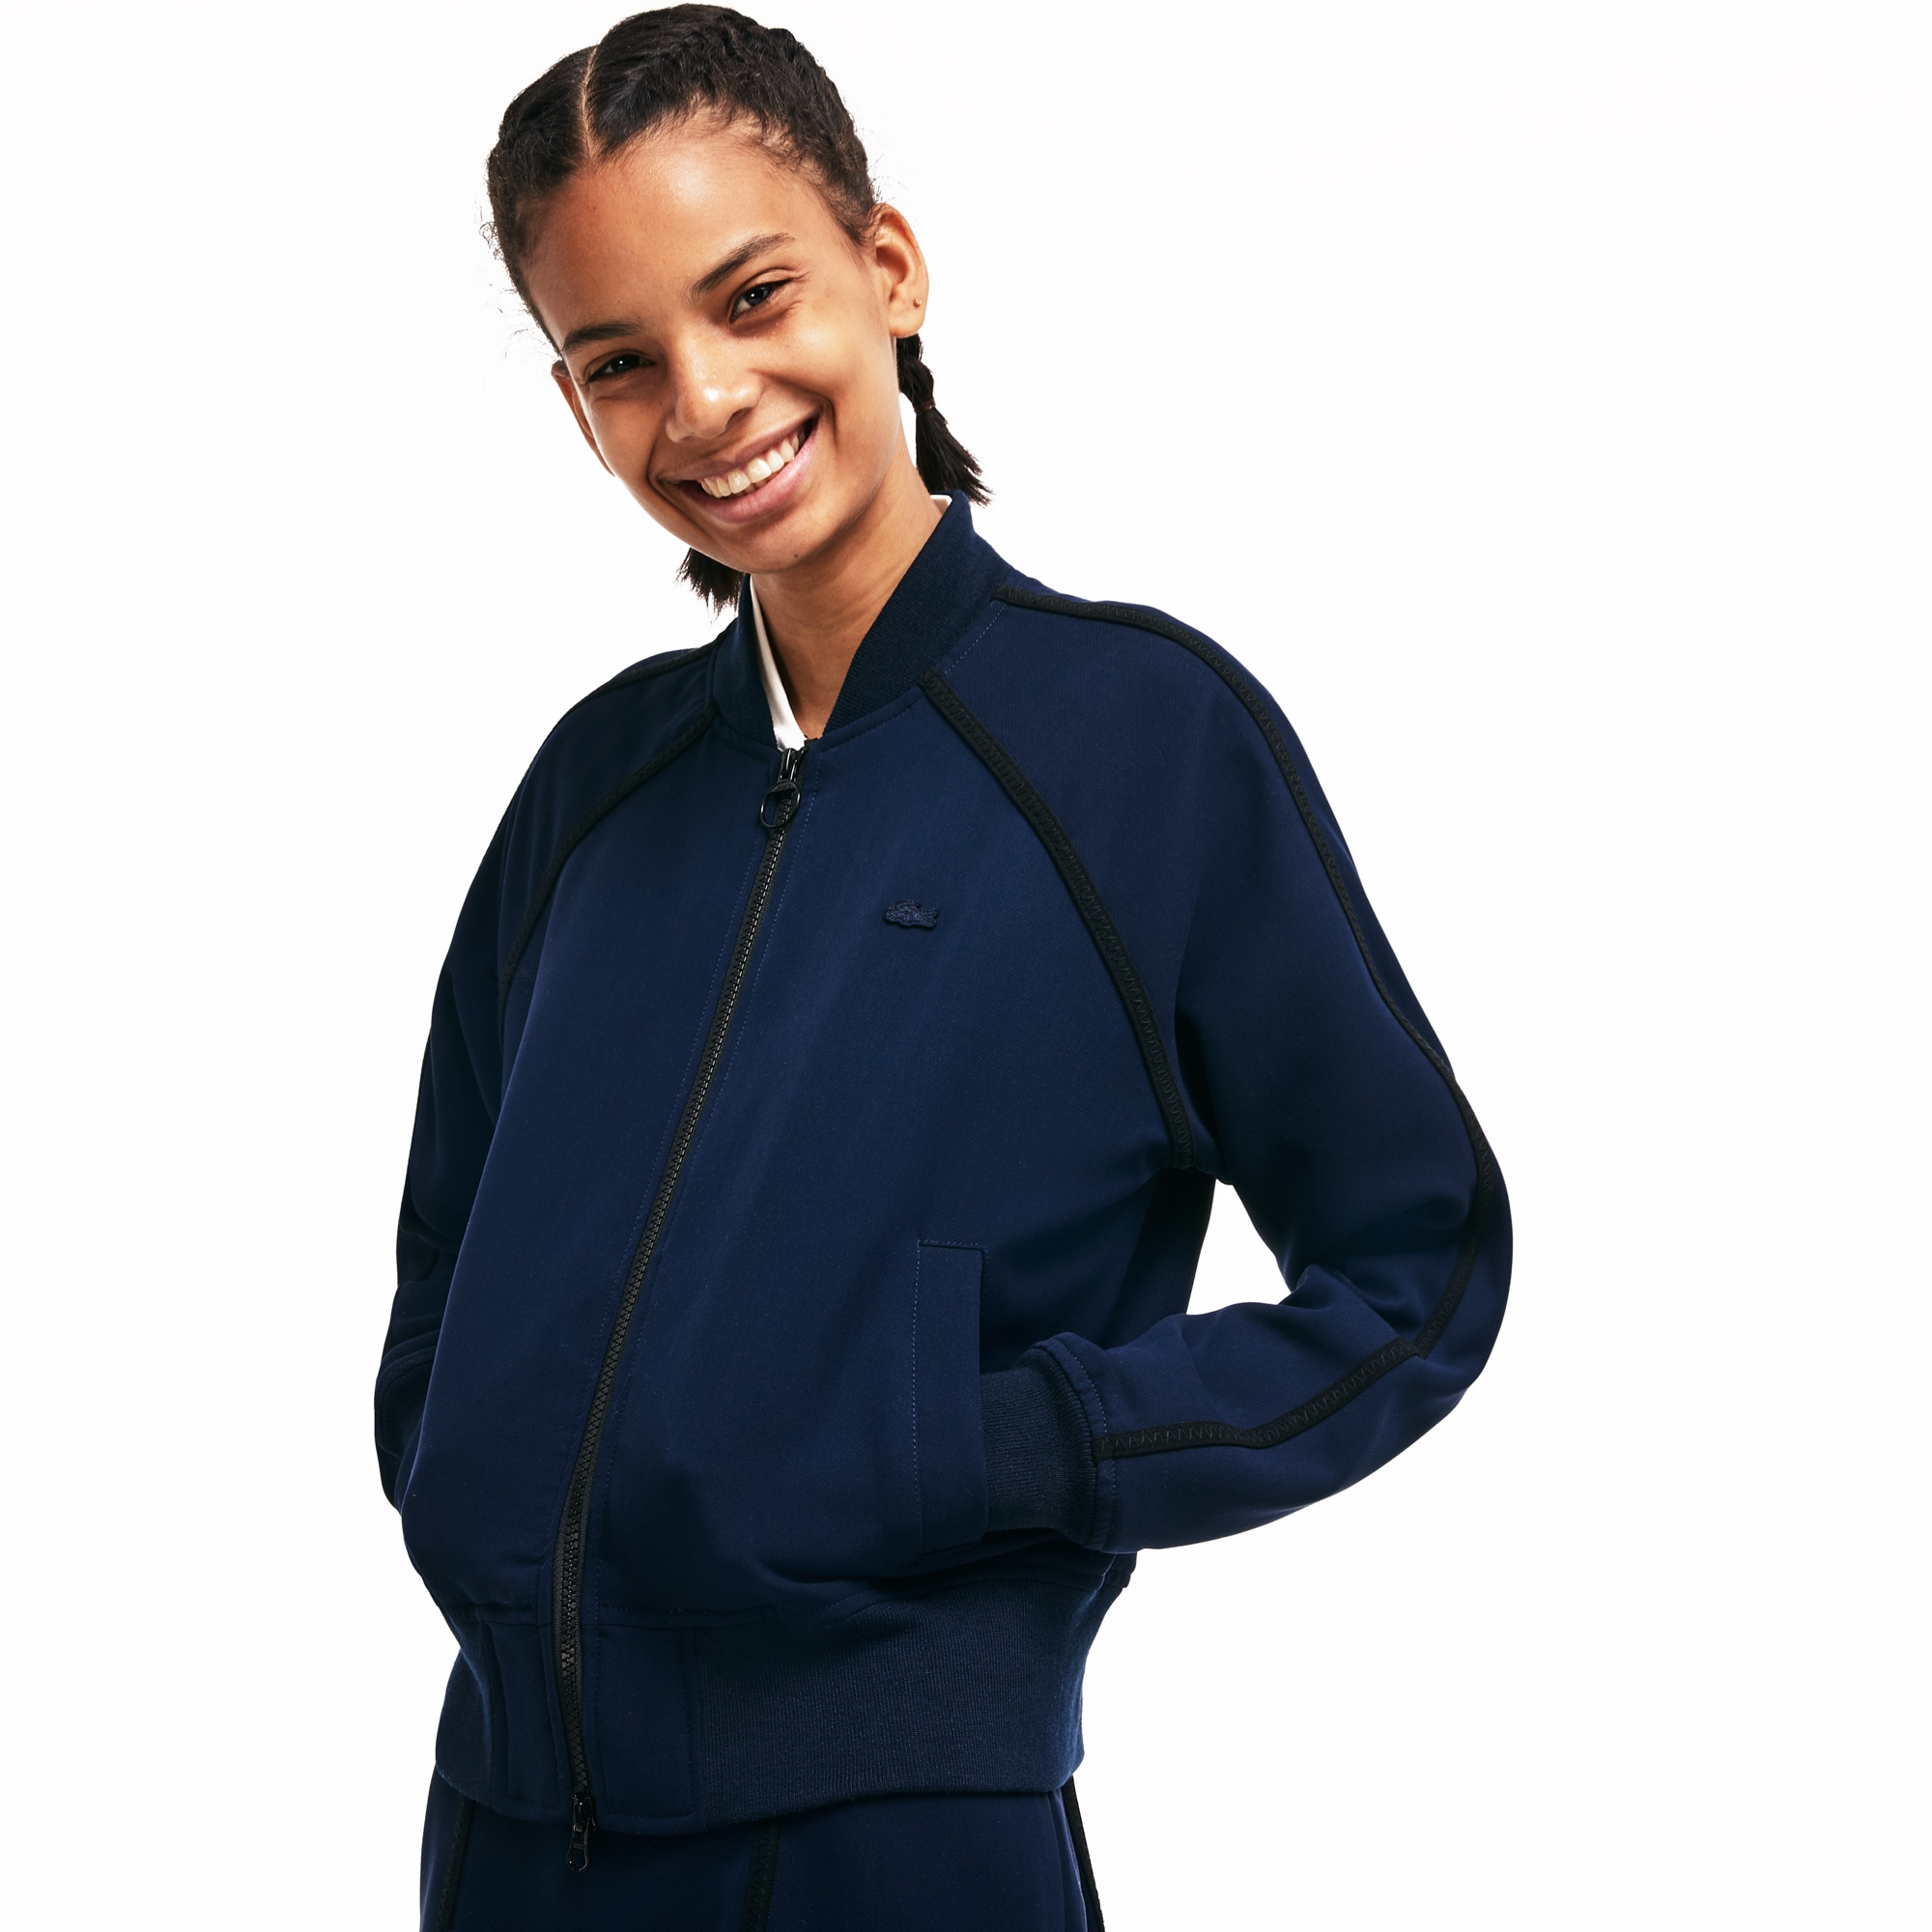 04f2dd447fd8 New. Women s LIVE Zip Bomber.  225.00. Women s SPORT Water-Resistant  Quilted Technical Golf Vest.  175.00